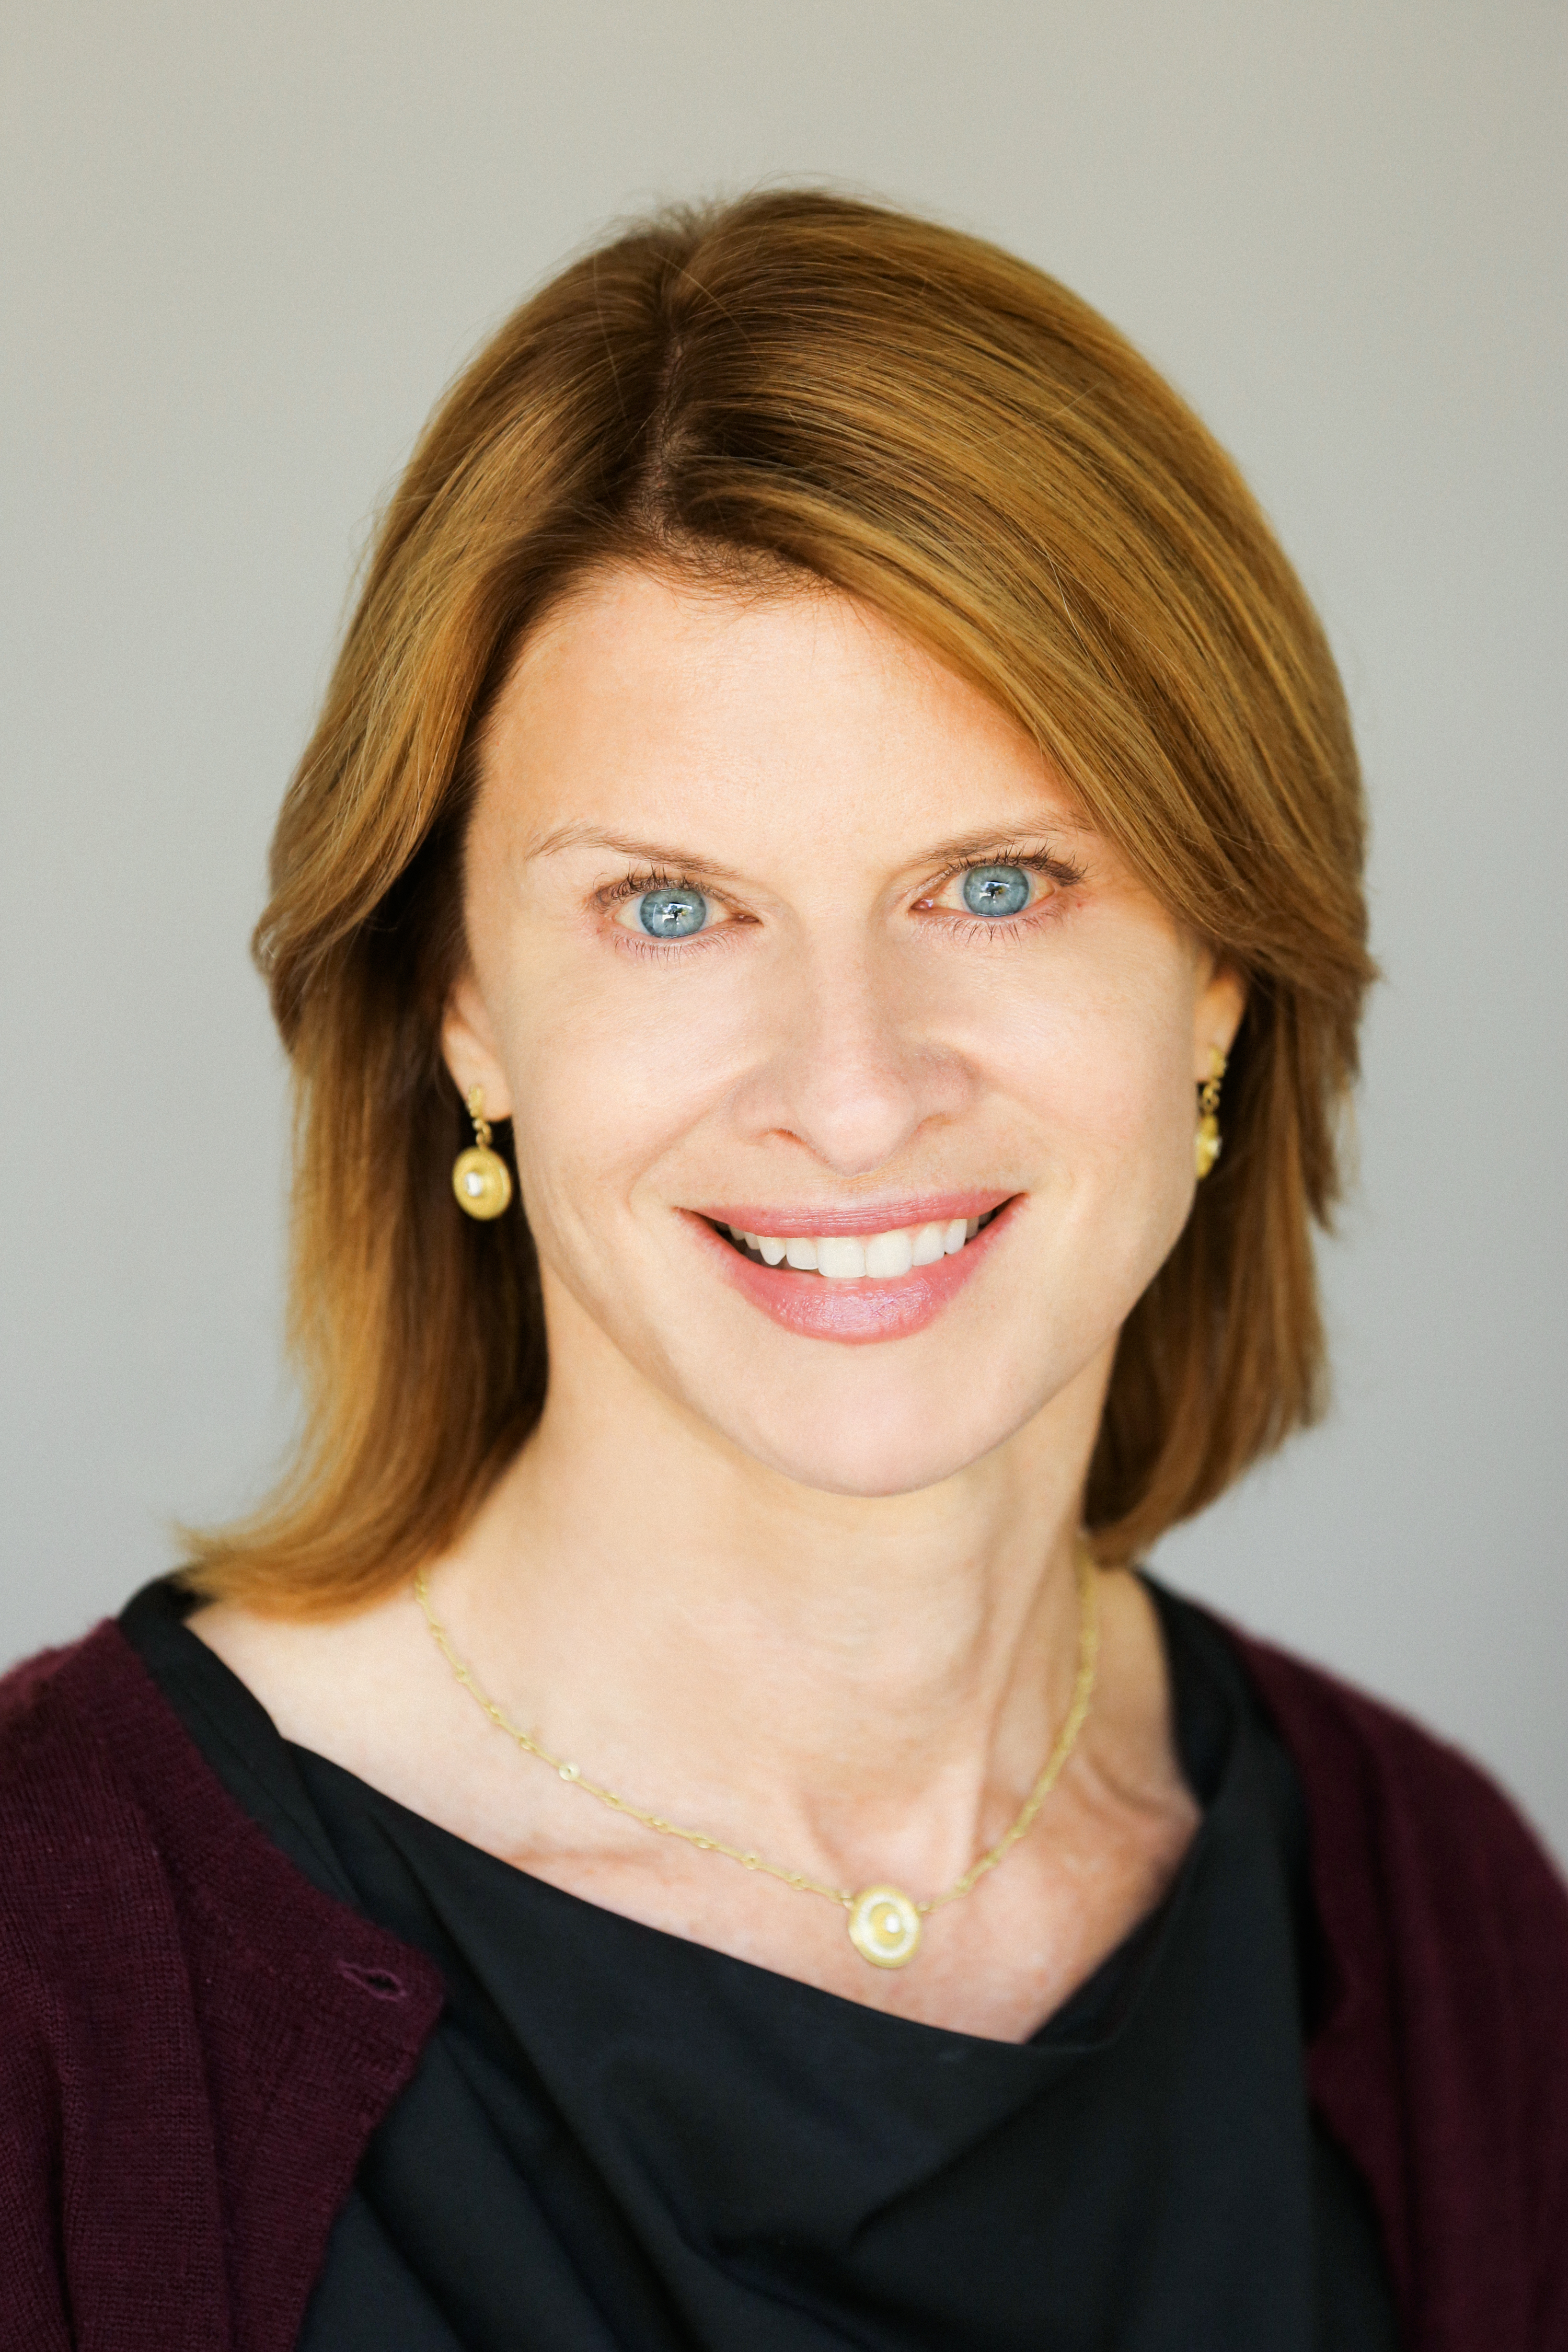 Maria Amundson, global chair of the technology sector at Edelman